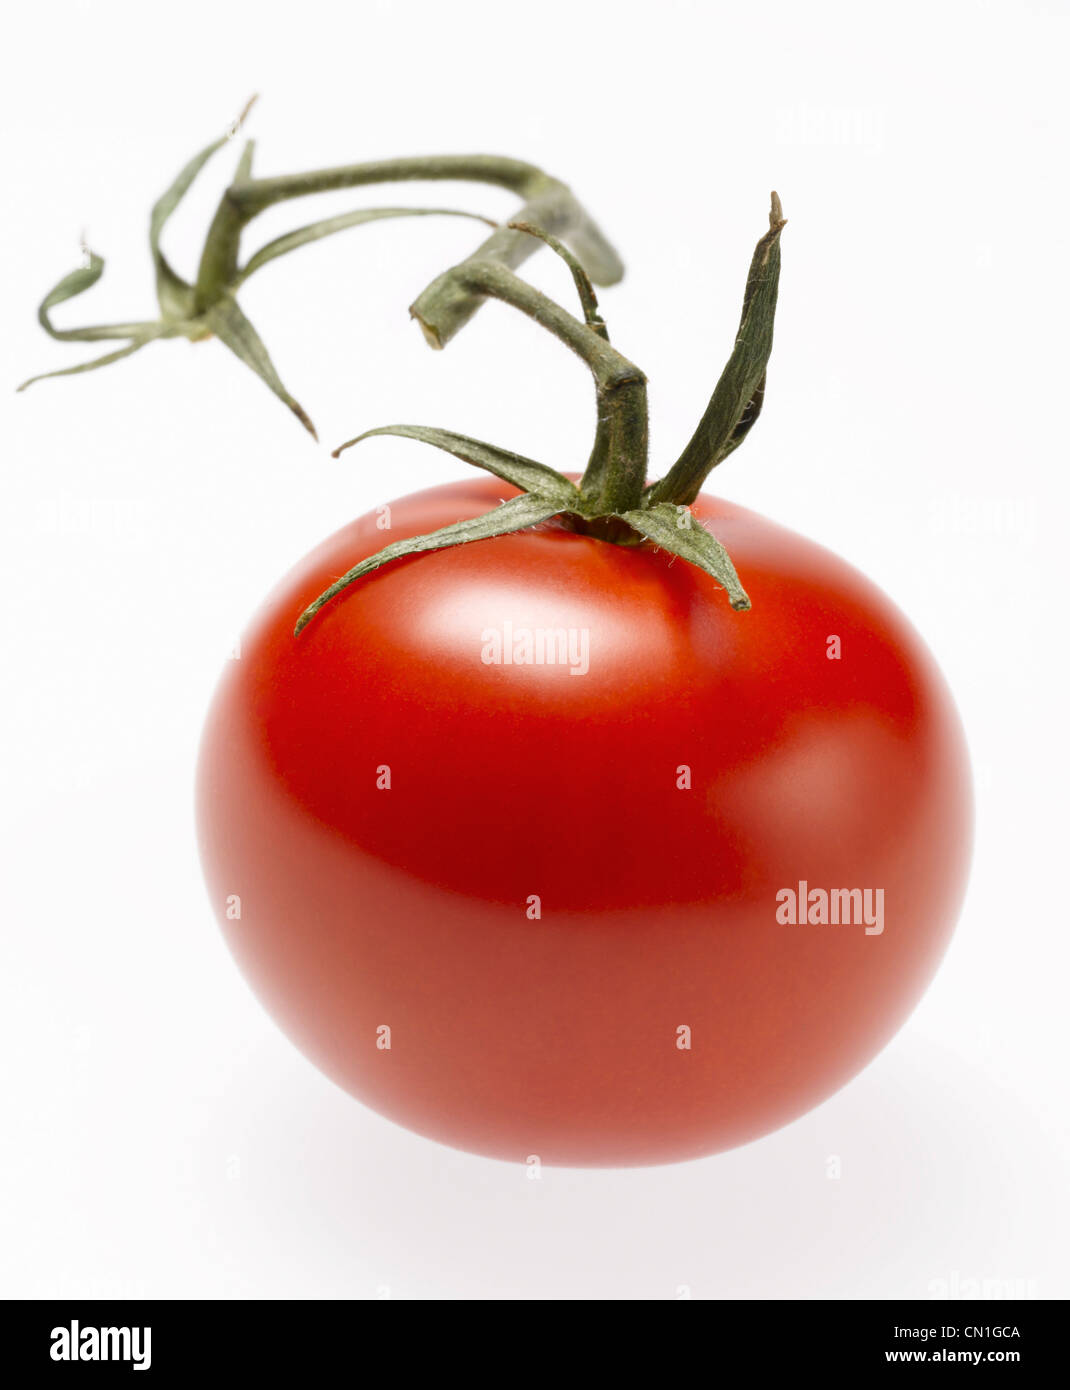 Whole Red Cherry Tomato with Stem Stock Photo